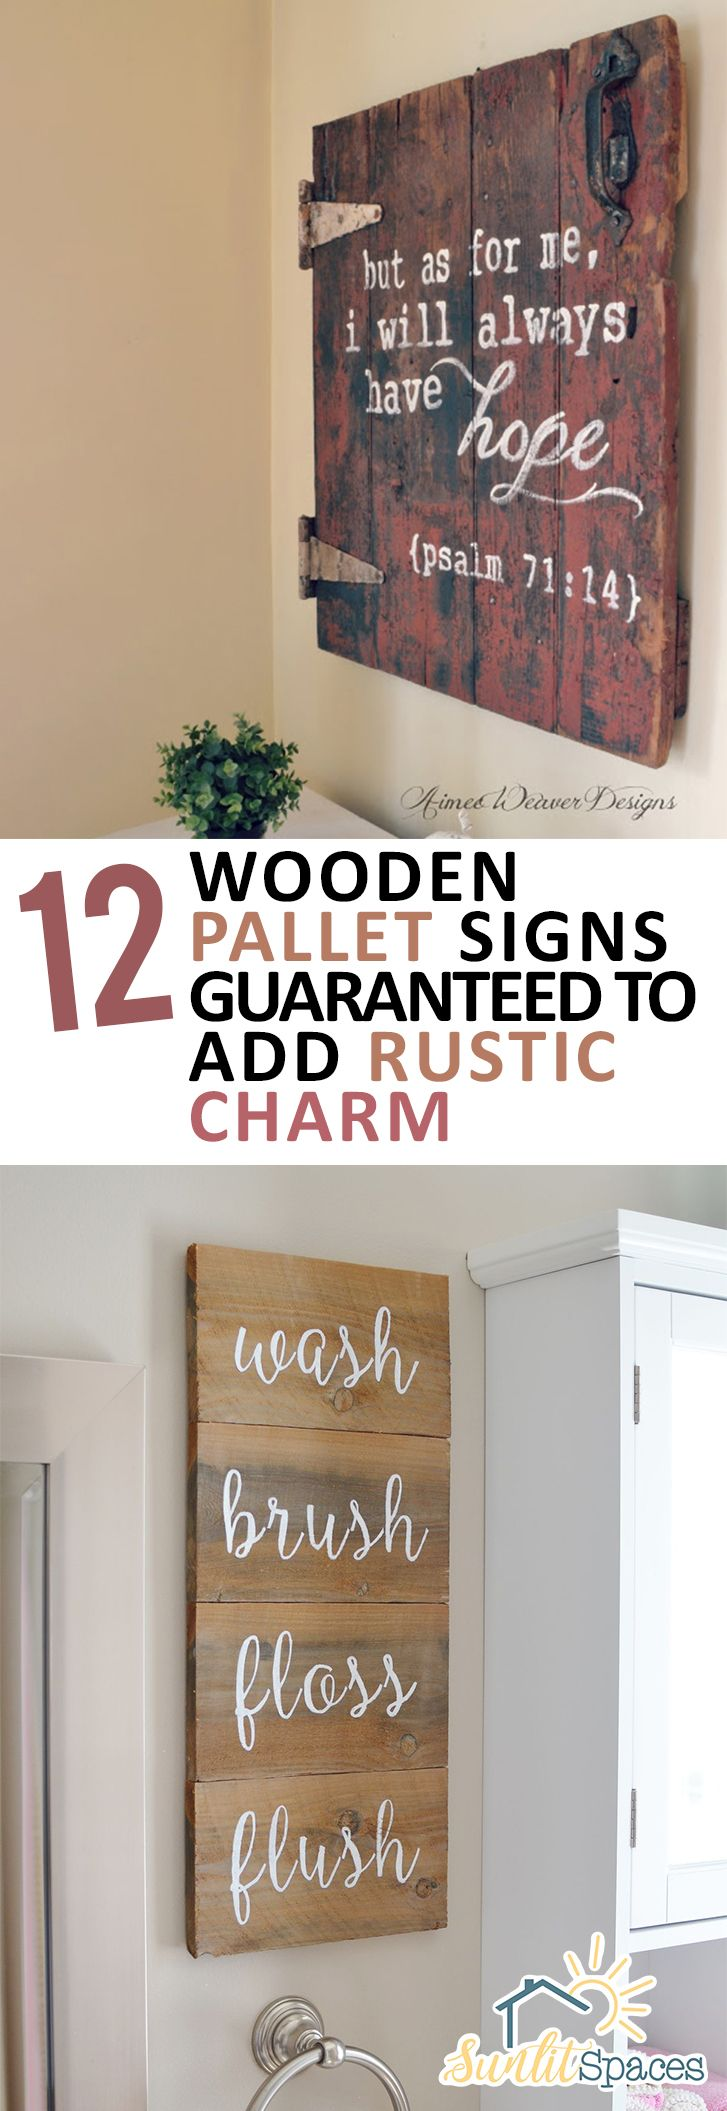 3 Home Decor Trends For Spring Brittany Stager: Best 25+ Wooden Pallet Projects Ideas On Pinterest